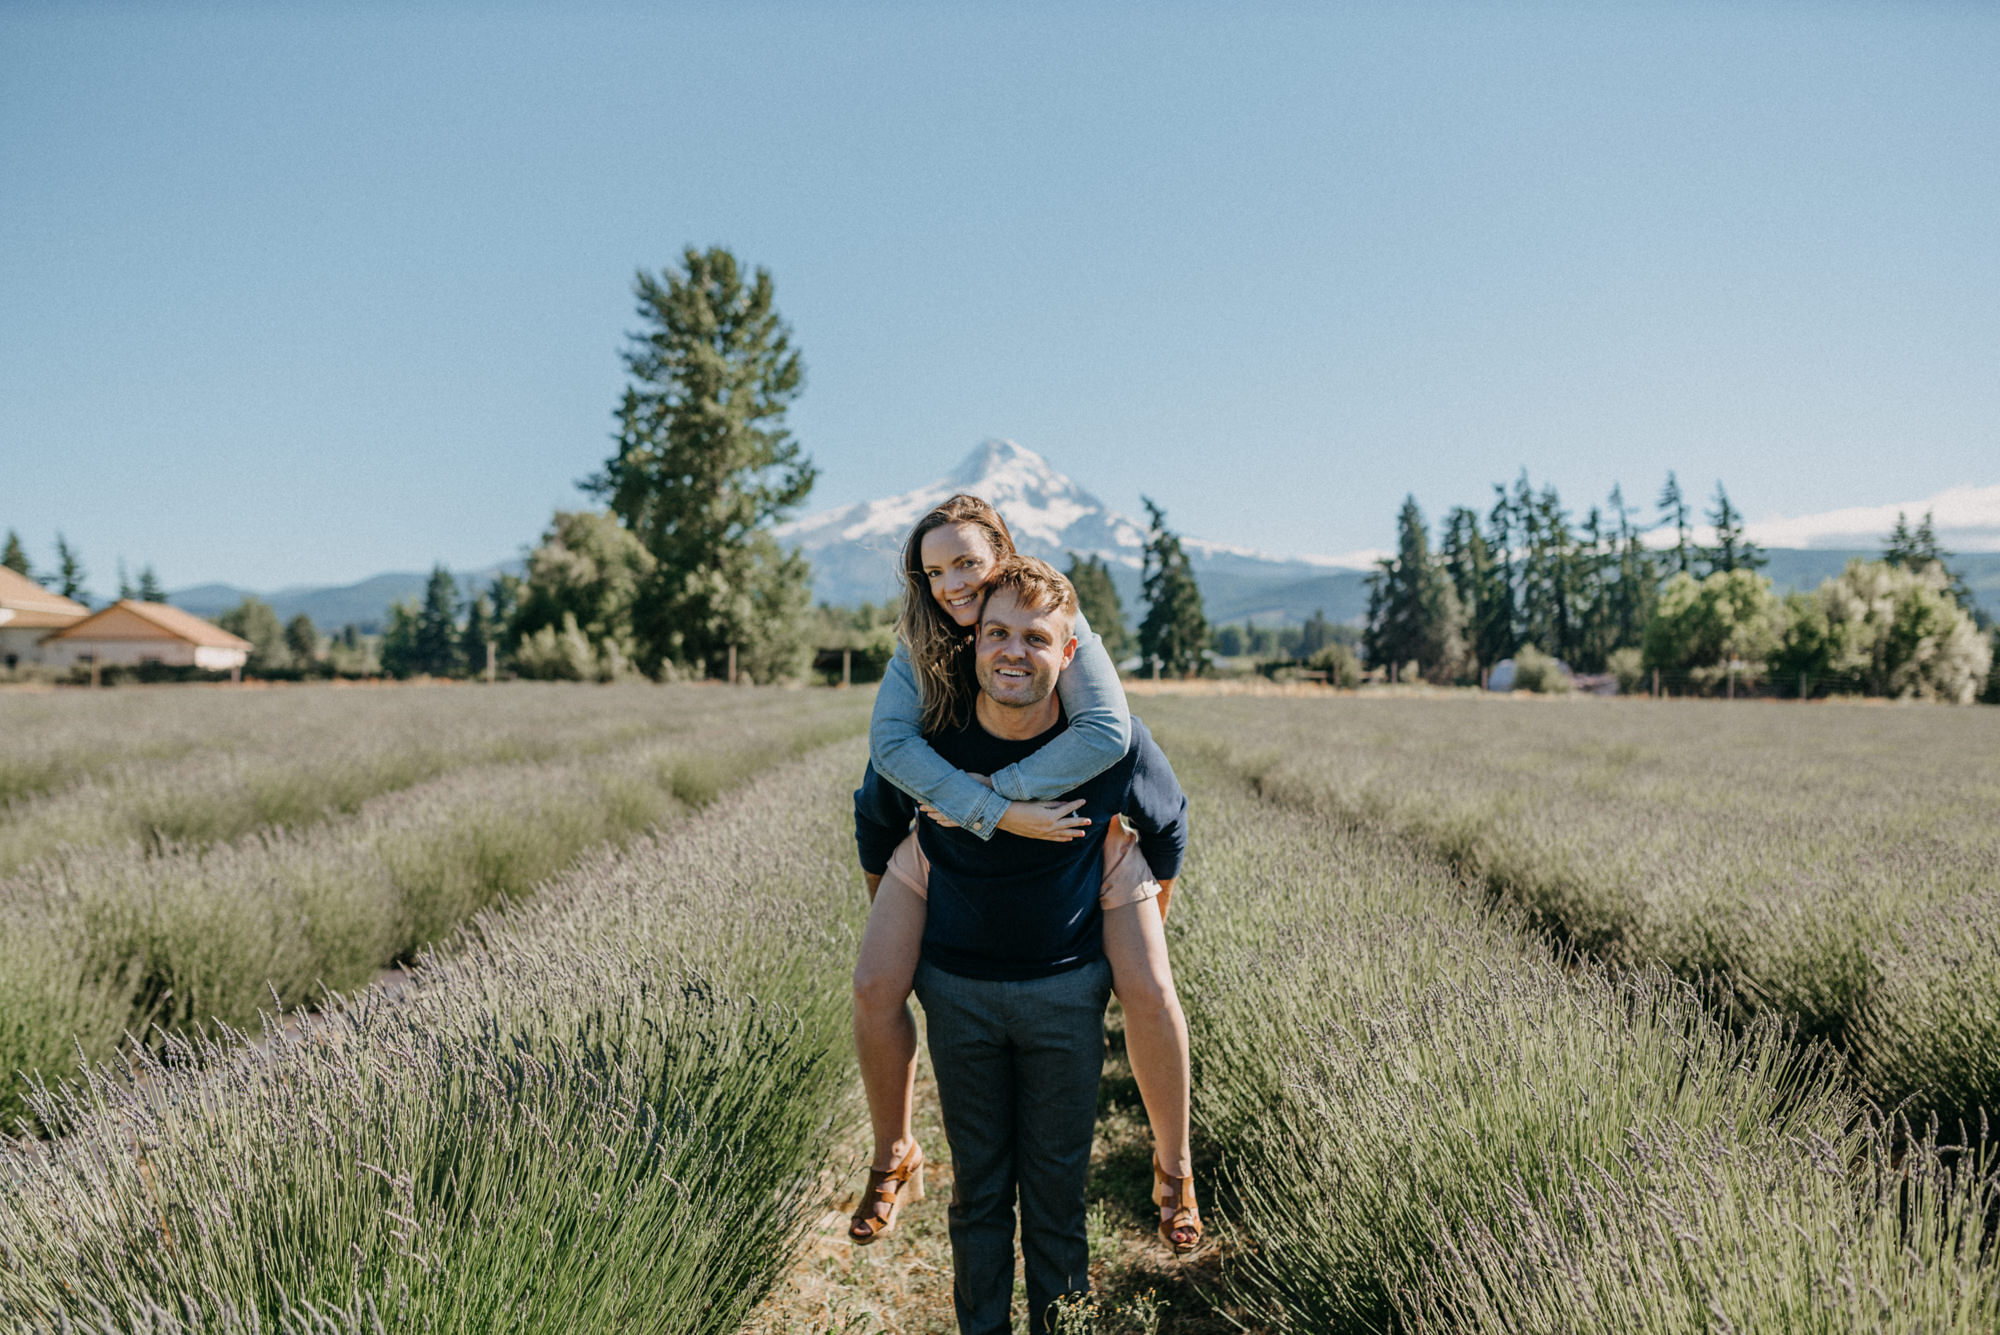 30-Mt-hood-lavender-farms-engagment-couple-summer-7804.jpg